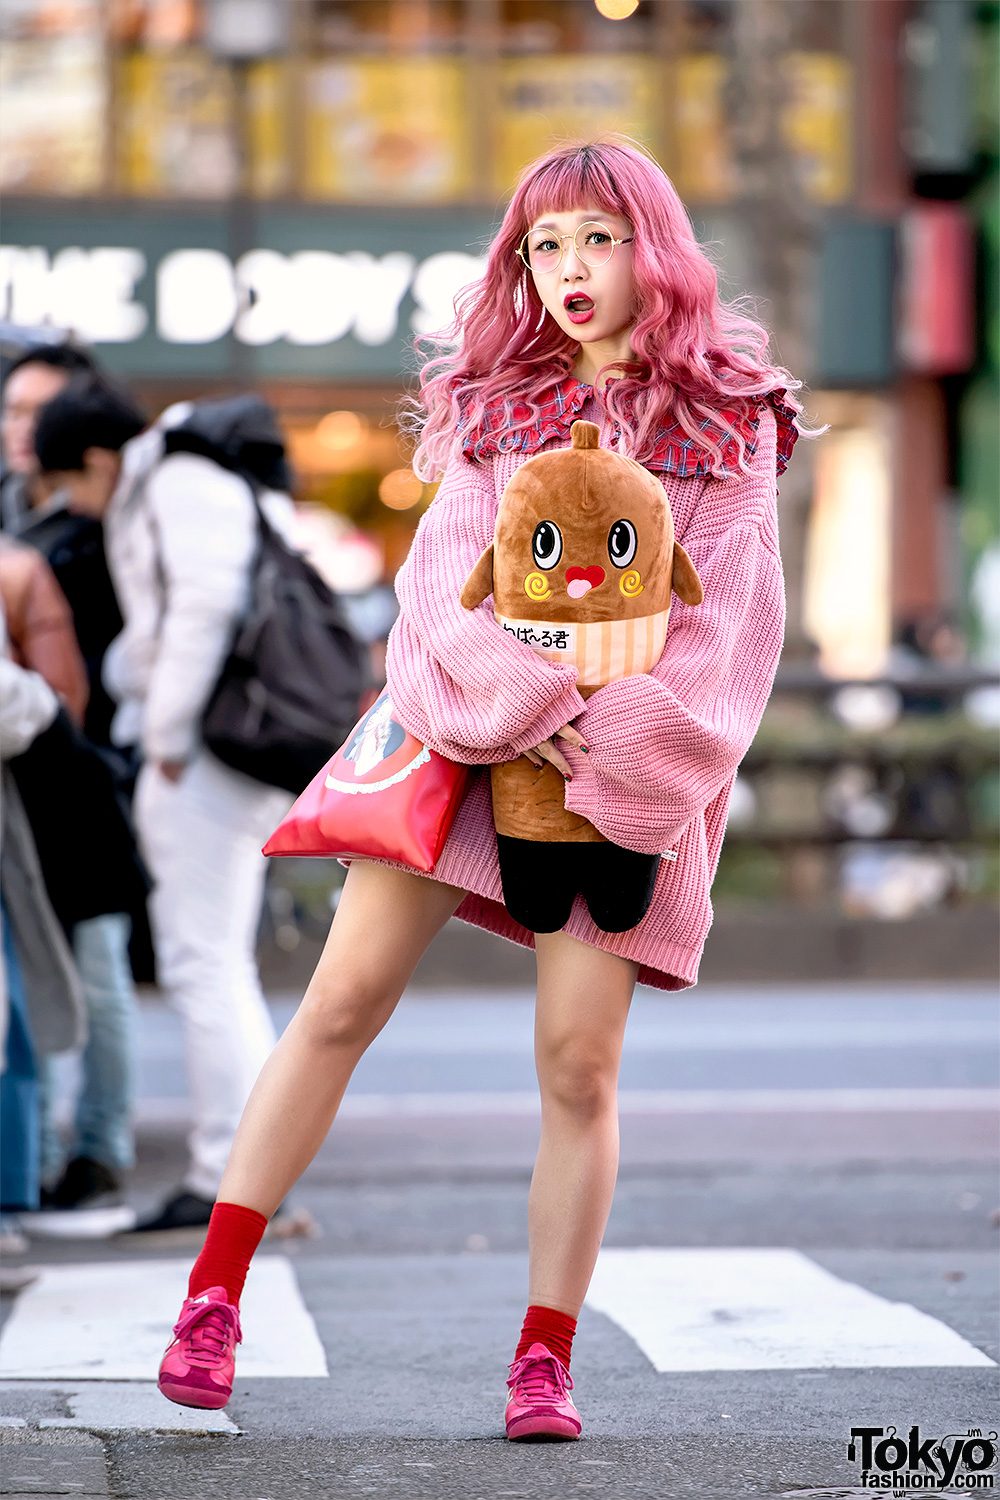 ... fashion features Kumatan and that she enjoys listening to the music of  Black Pink. Follow her on Instagram or Twitter for more kawaii fashion  photos. b3a3a39ce801